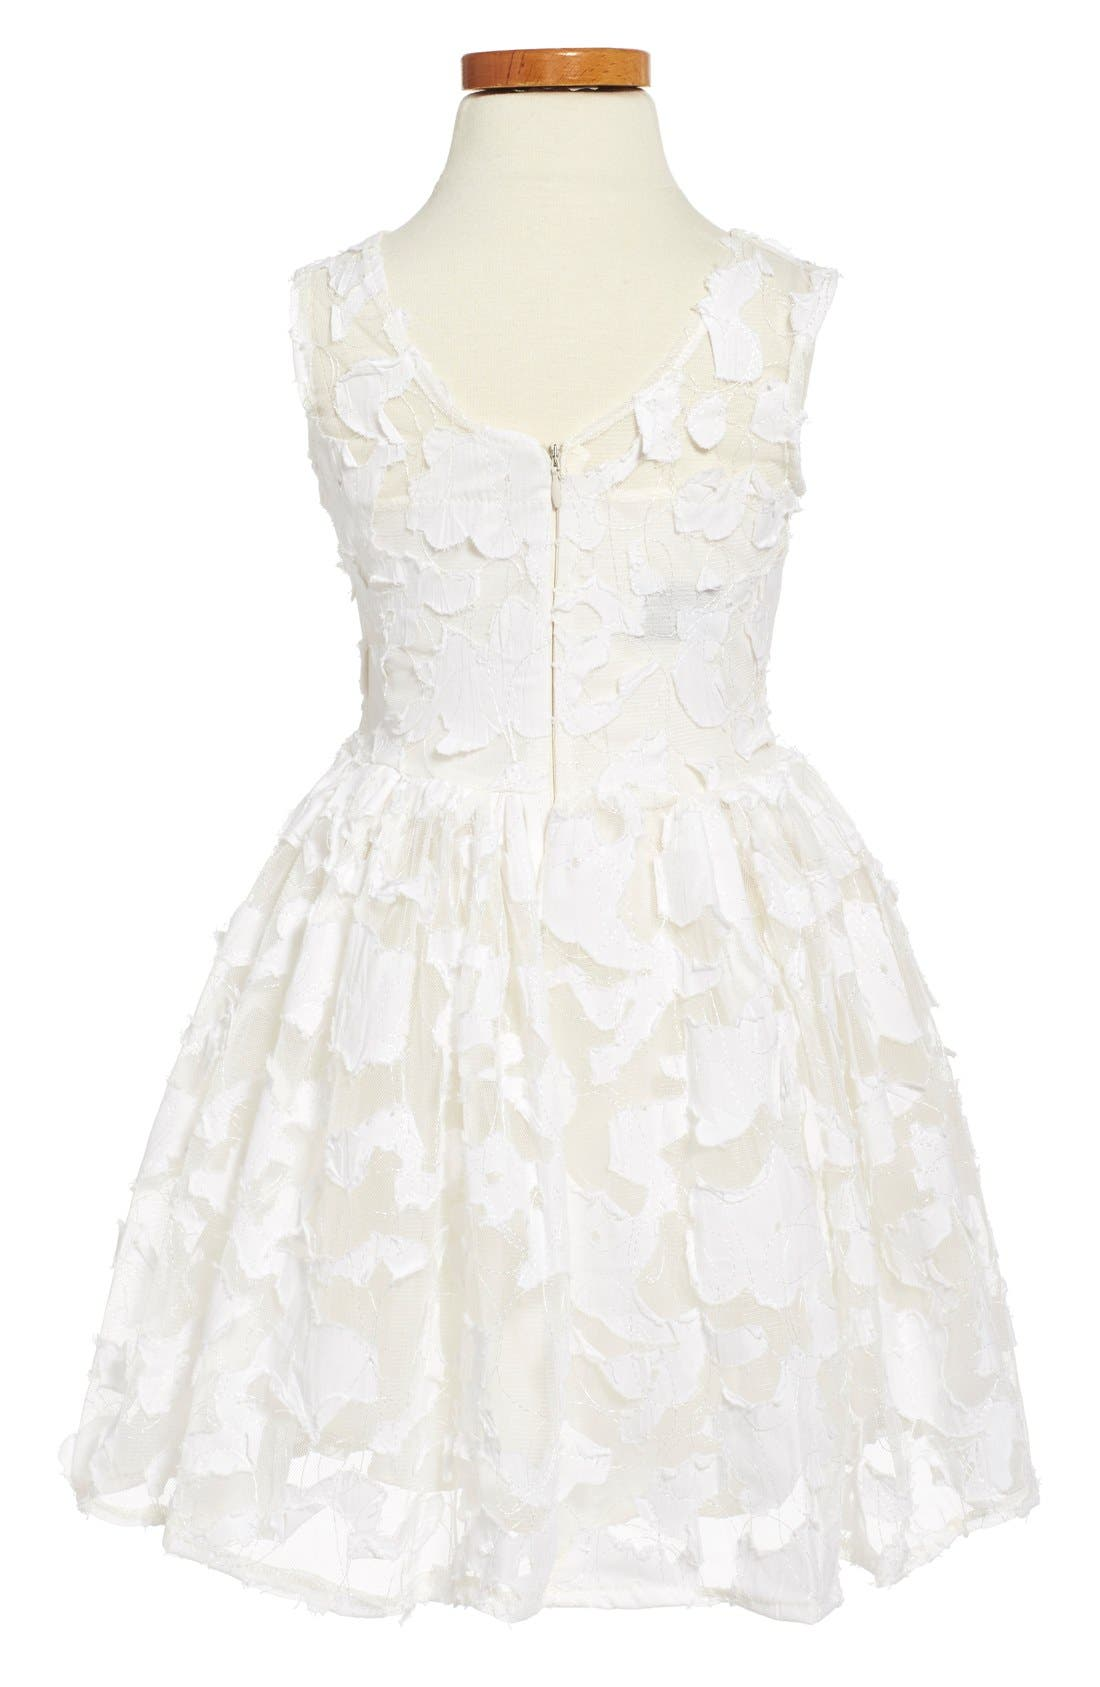 'Pretty in Ivory' Party Dress,                             Alternate thumbnail 6, color,